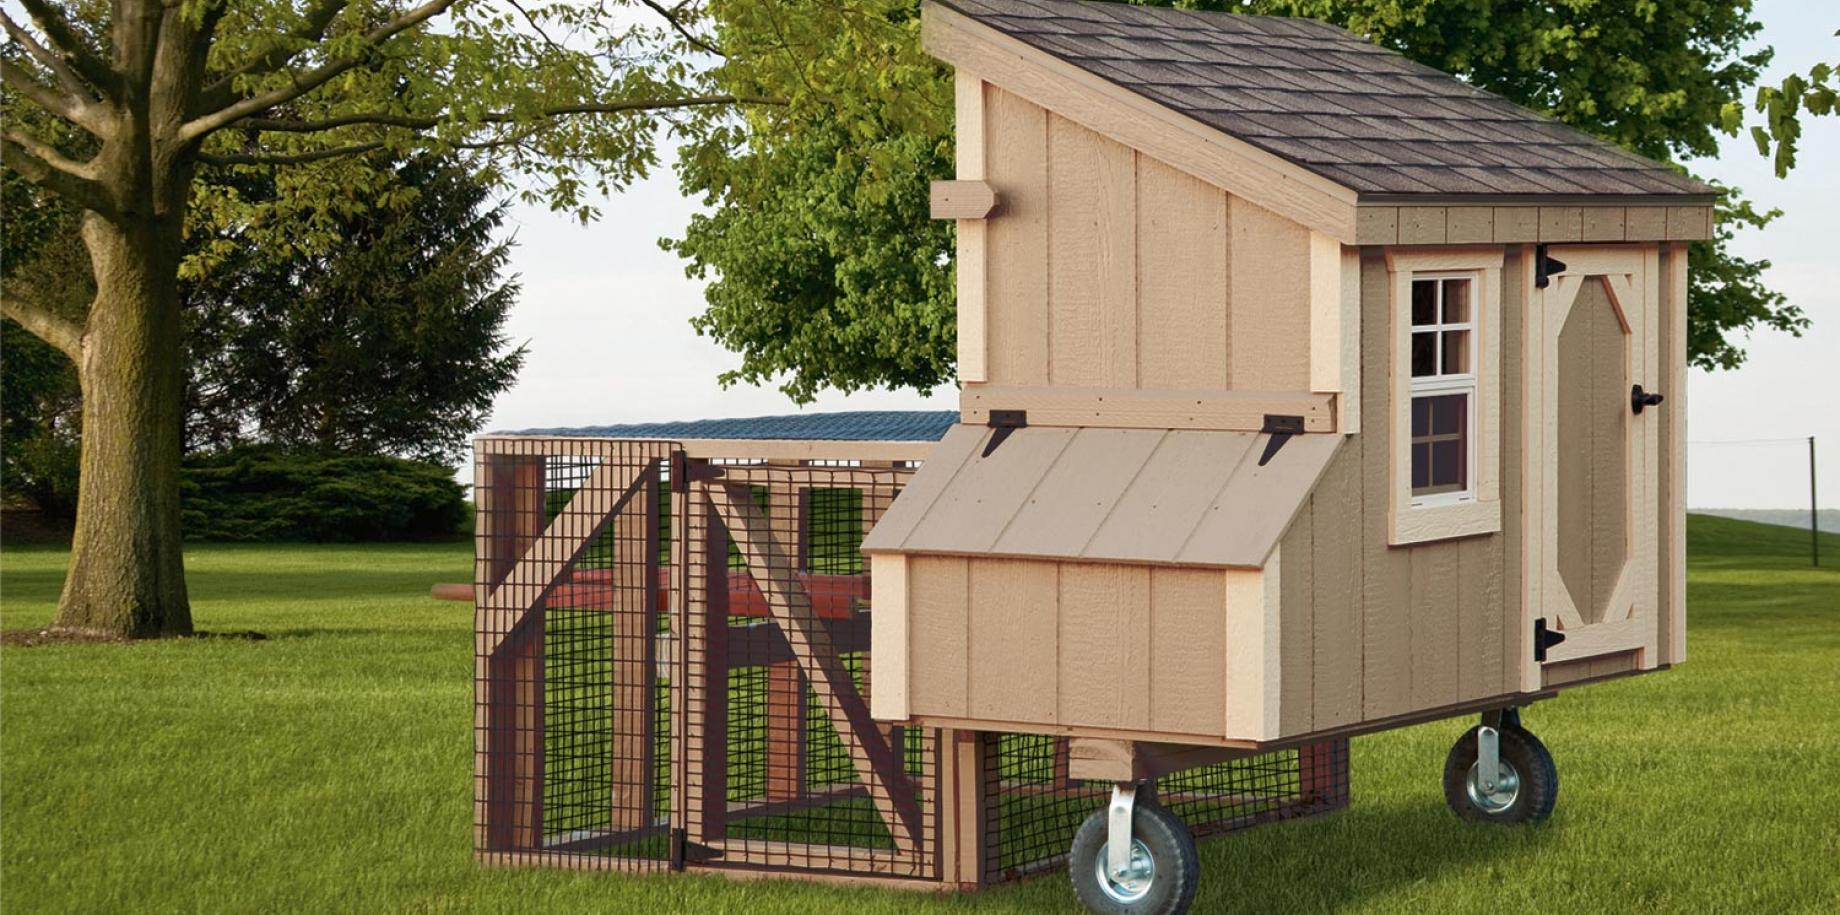 3'x5' lean to tractor chicken house